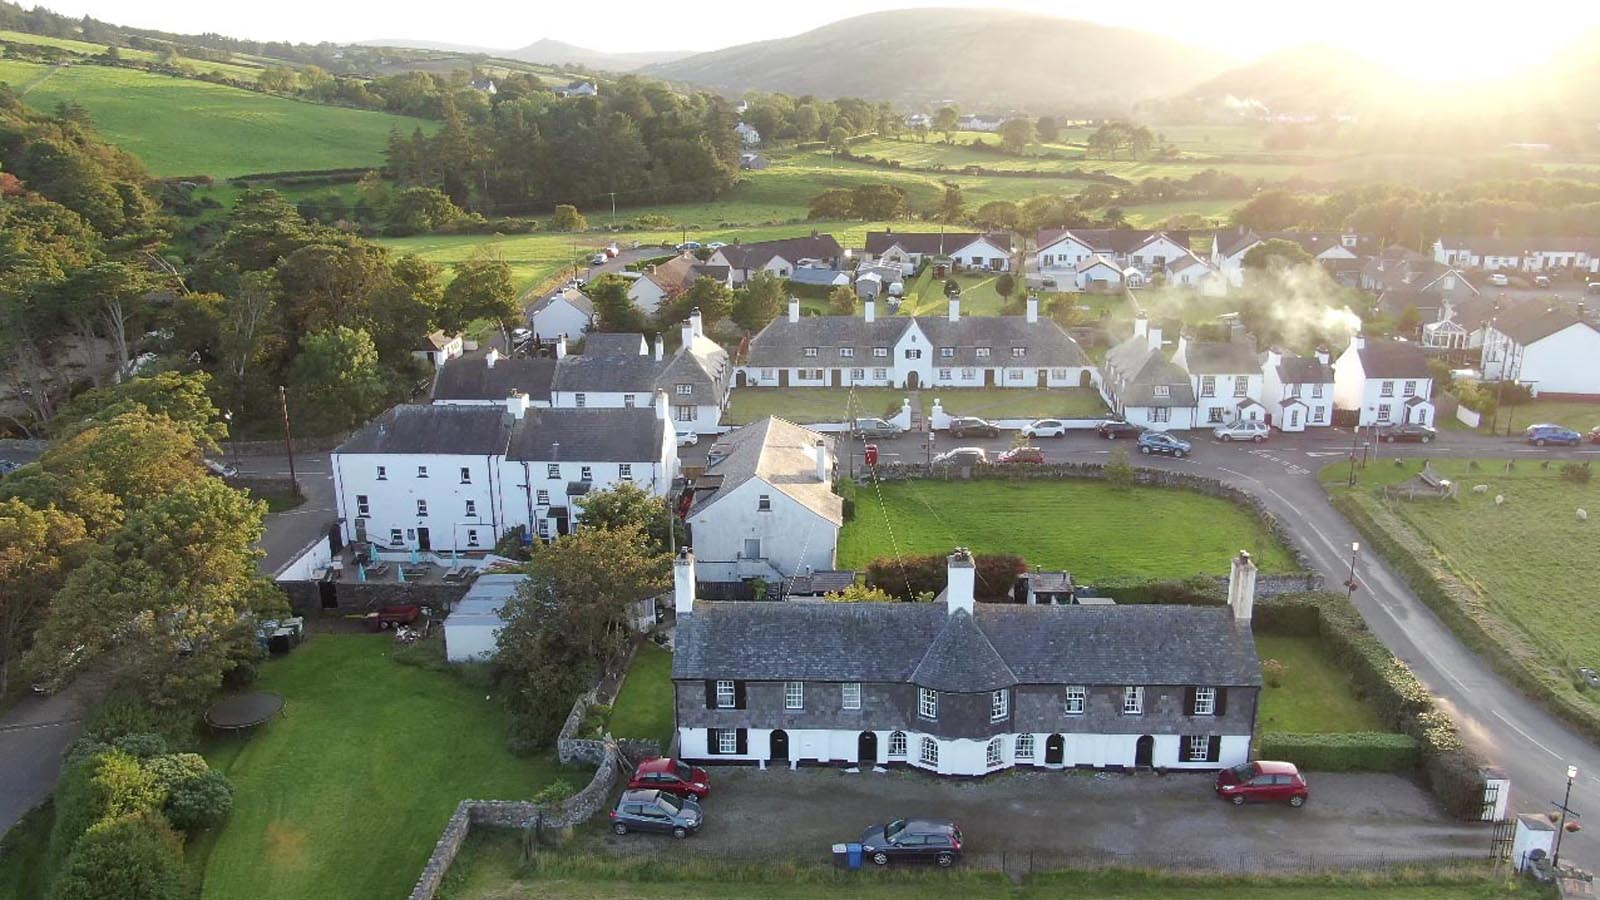 Aerial drone photography and video production services Dublin and Ireland portfolio - screenshot 6 of Glendun to Cushendun video